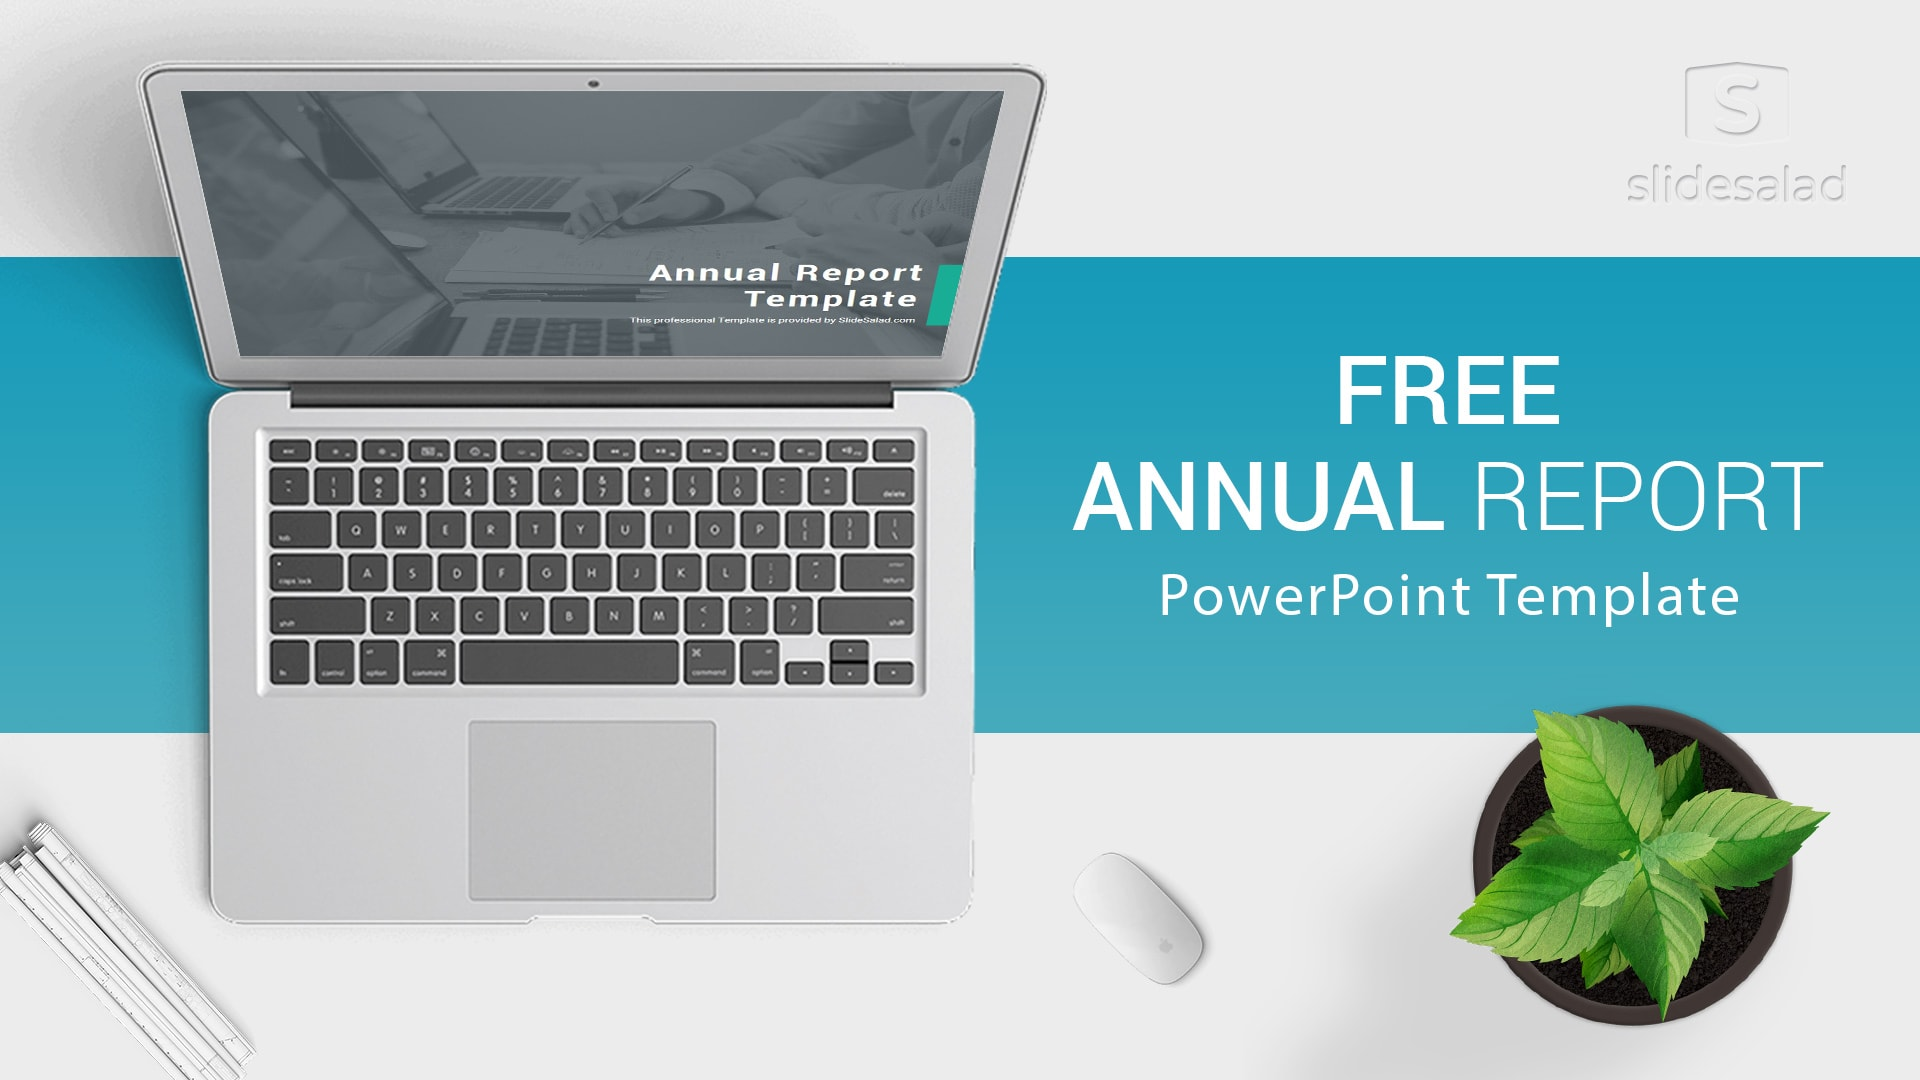 Annual Report PowerPoint Template for Presentations